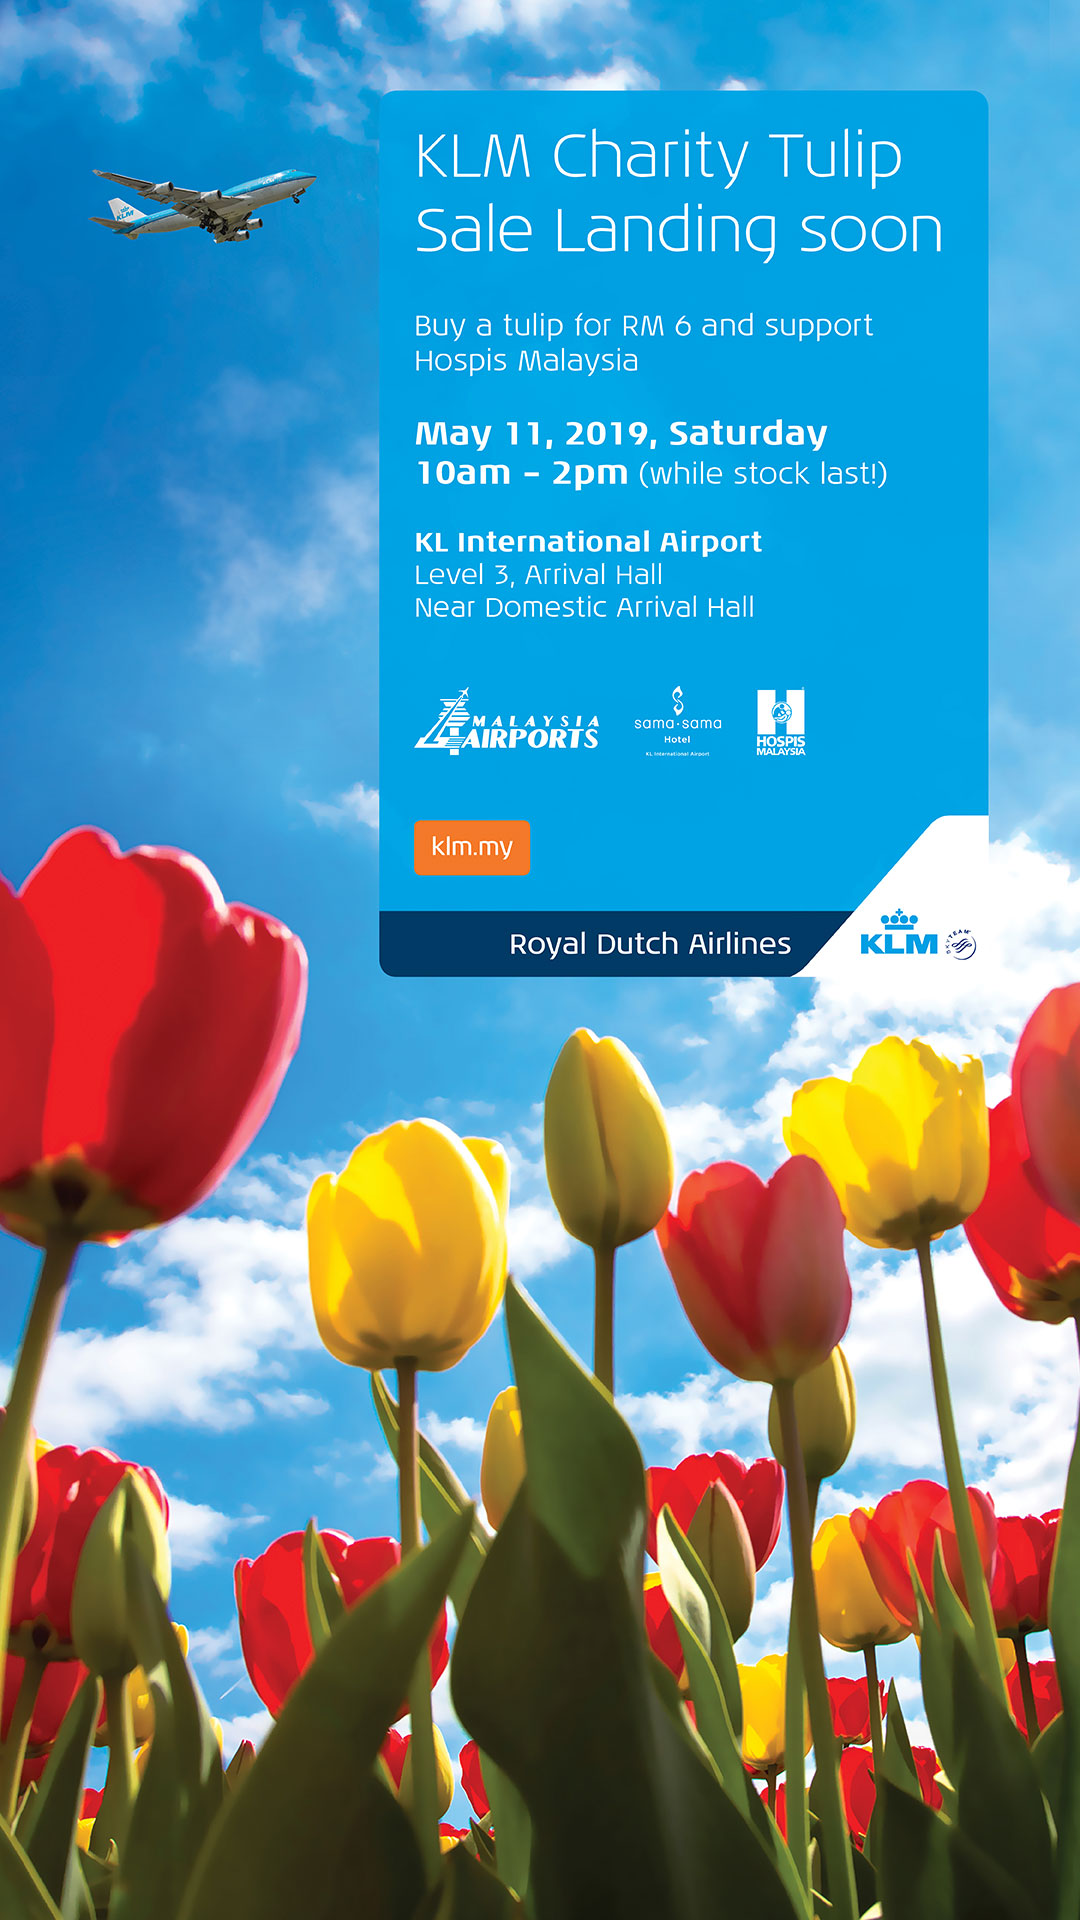 KLM_MY_CharityTulipSale_MAHB_DigitalPanels_1080Wx1920Hpx_20190415